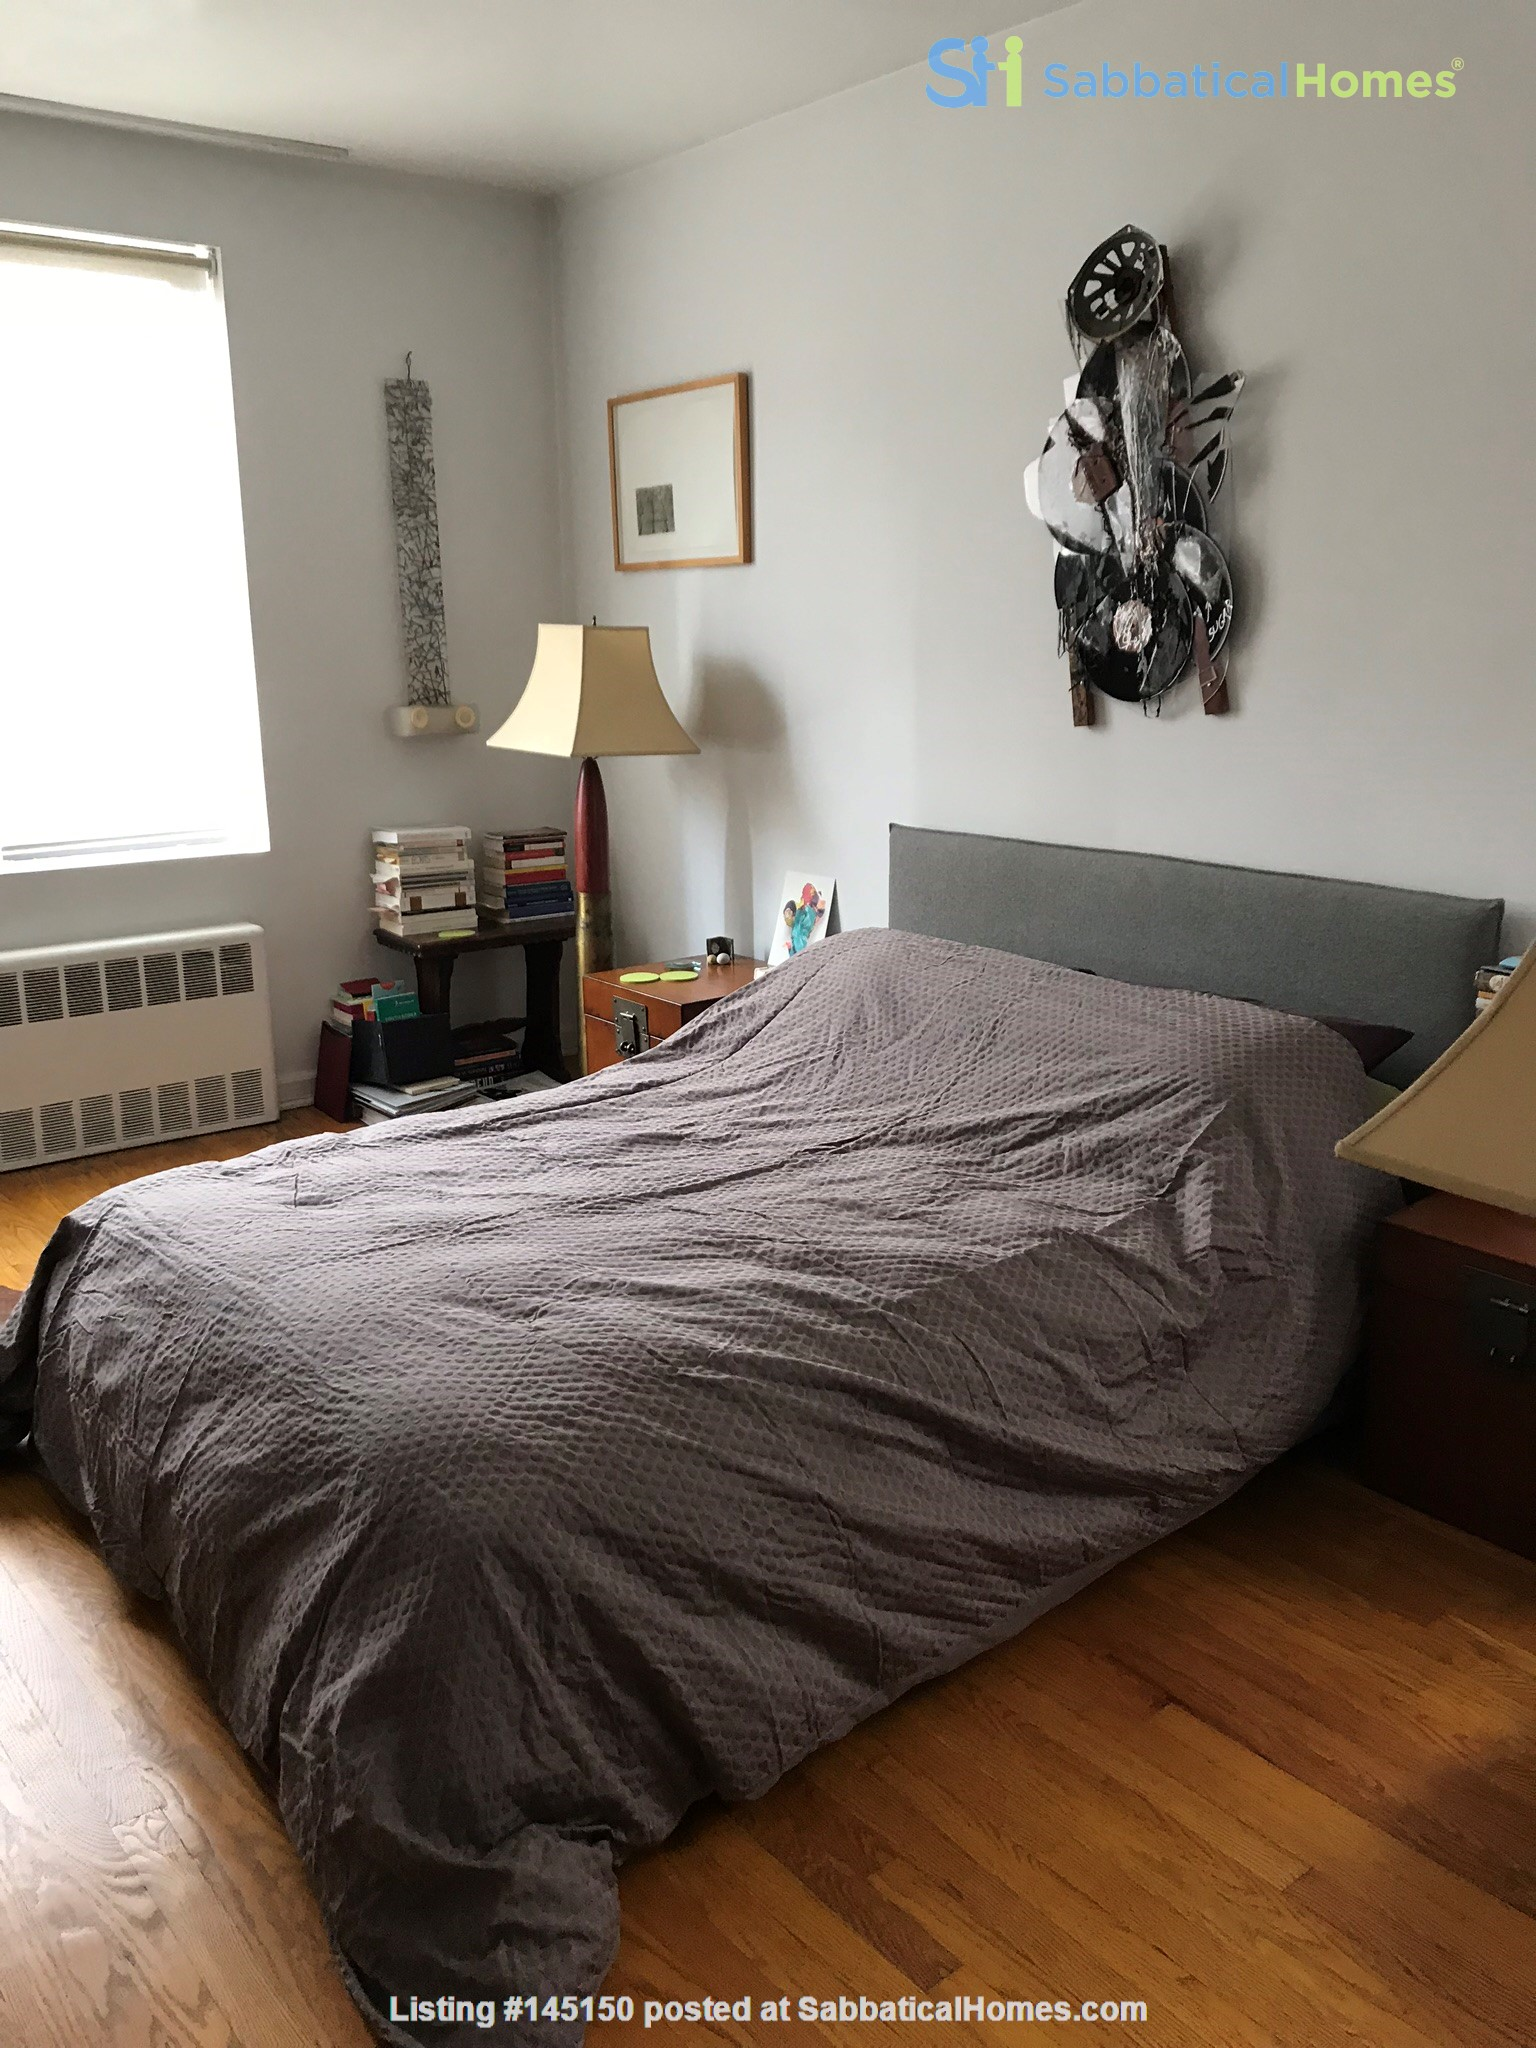 Steps from Central Park, place full of art and sun. Home Rental in New York, New York, United States 4